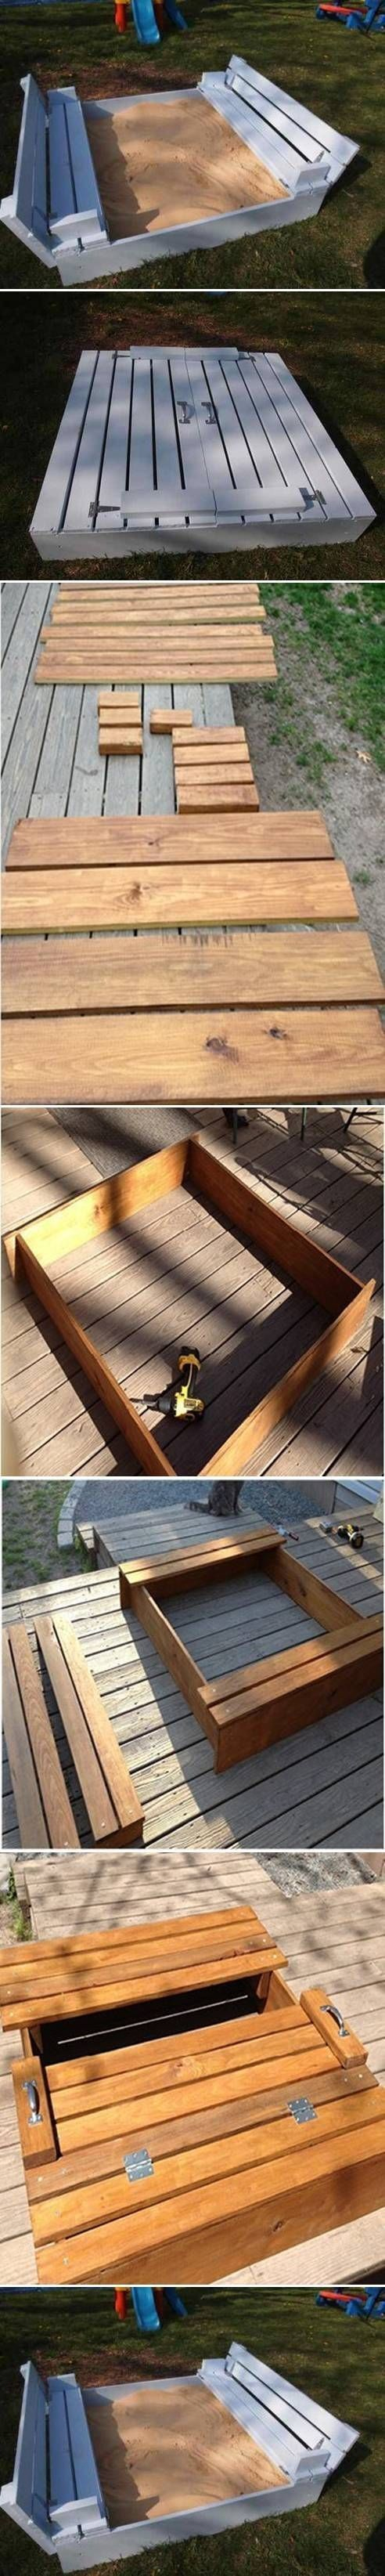 best craft ideas images on pinterest creative ideas crafts and